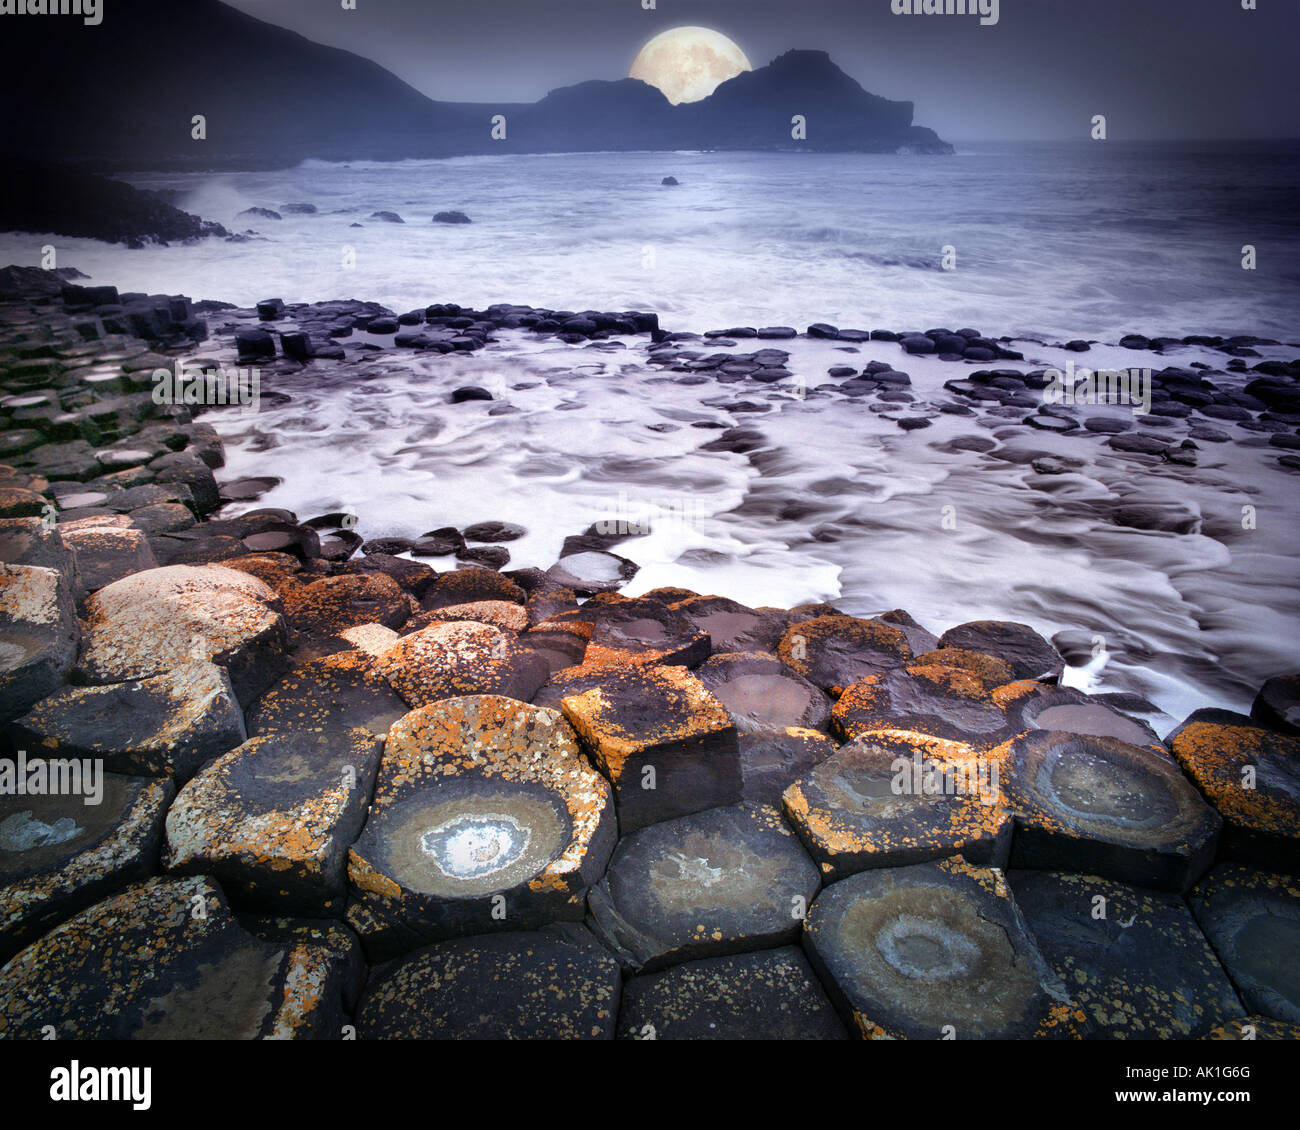 GB - NORTHERN IRELAND:  Moon over Giant's Causeway - Stock Image